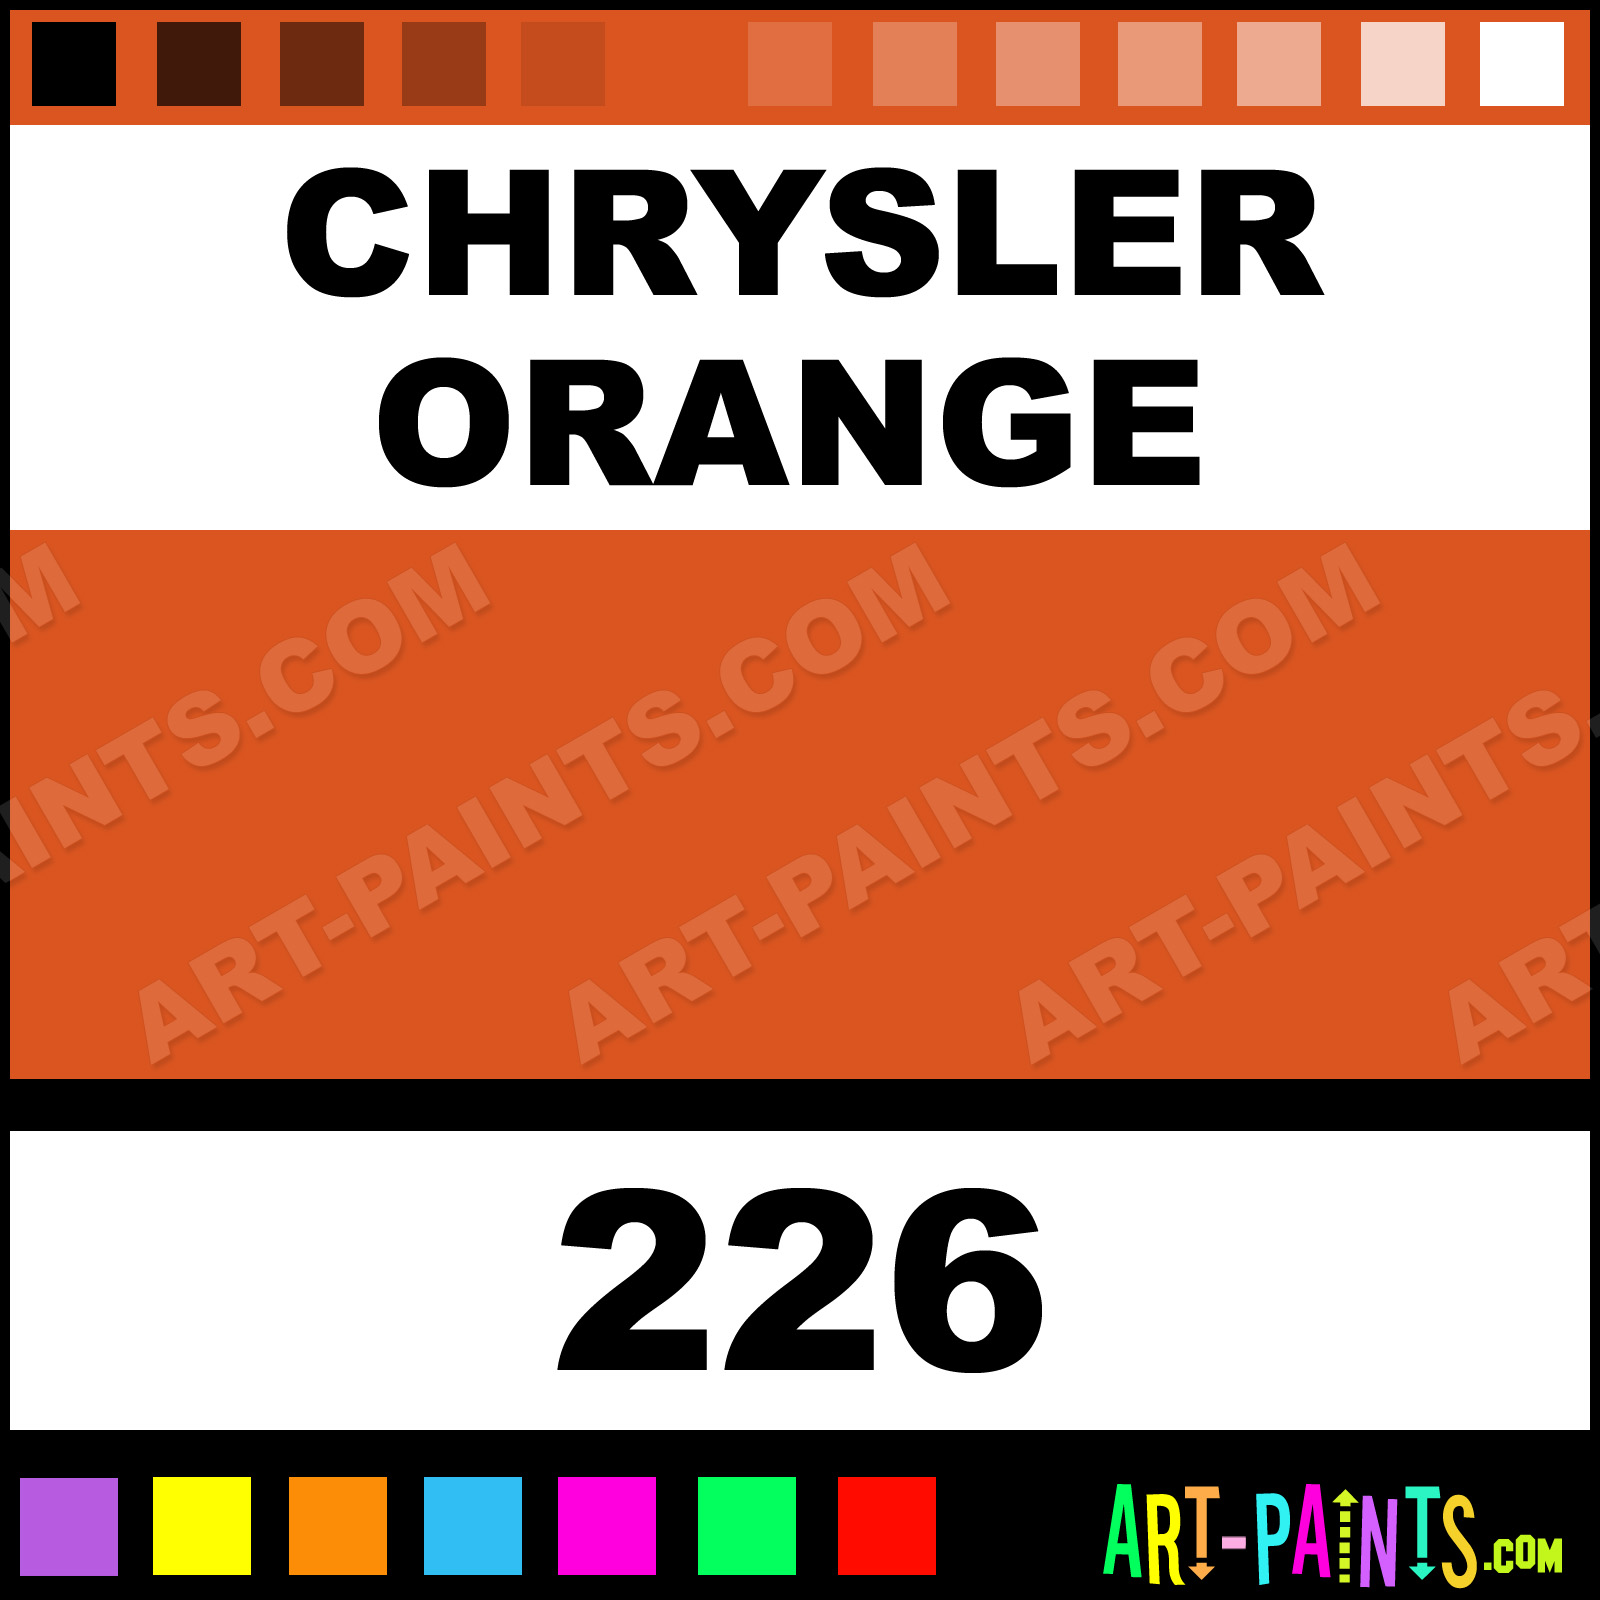 Chrysler orange 226